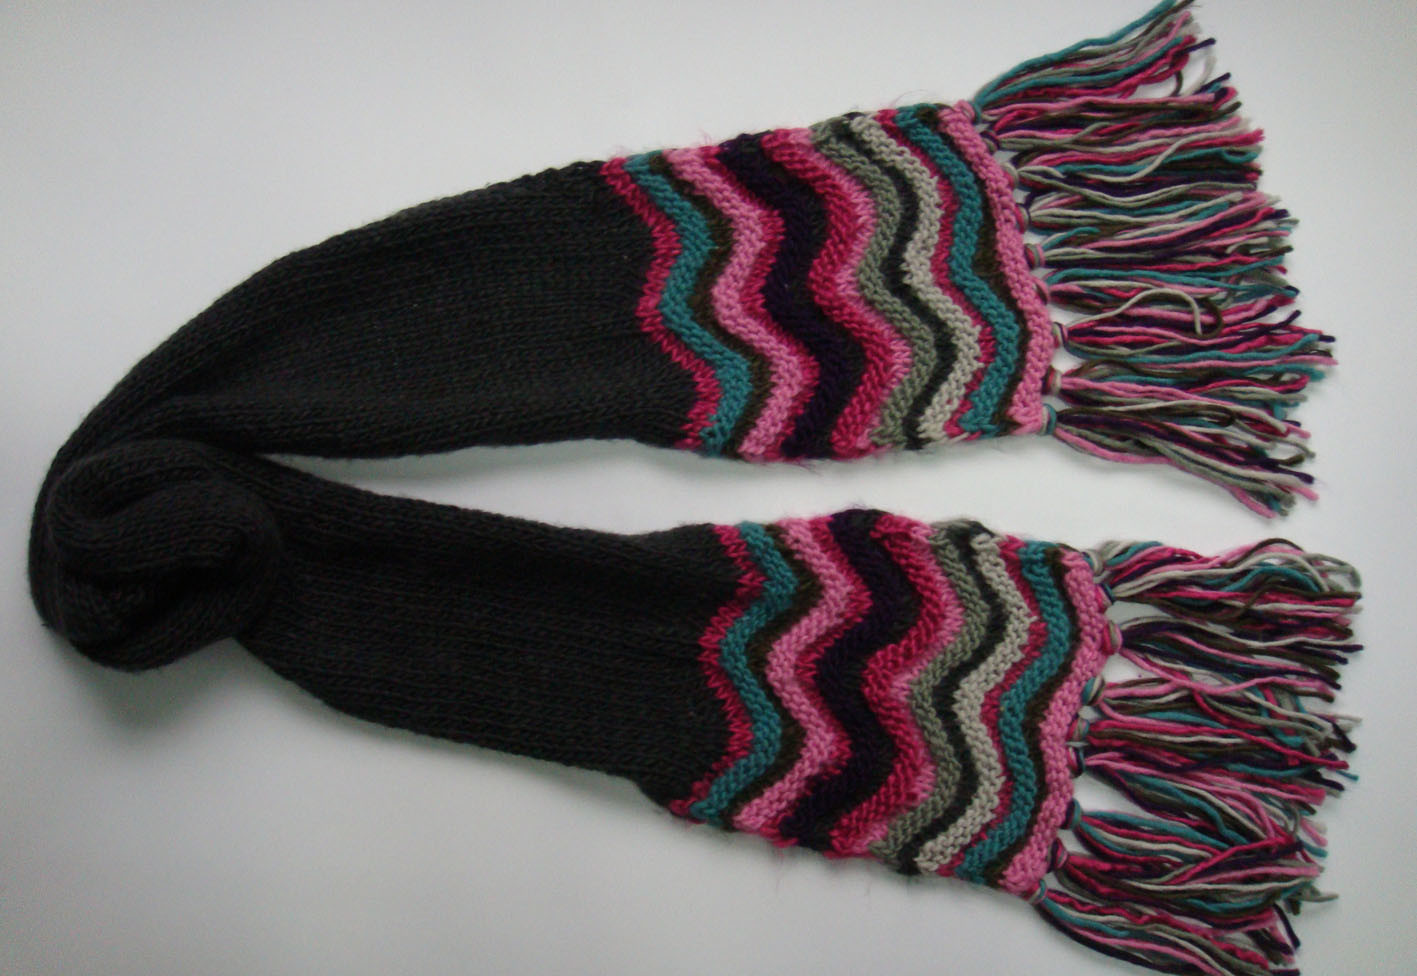 Knitting Pattern Striped Scarf : China Ladies Fashion Striped Knitted Scarf (KBHY07865) - China Knitted Scarf,...